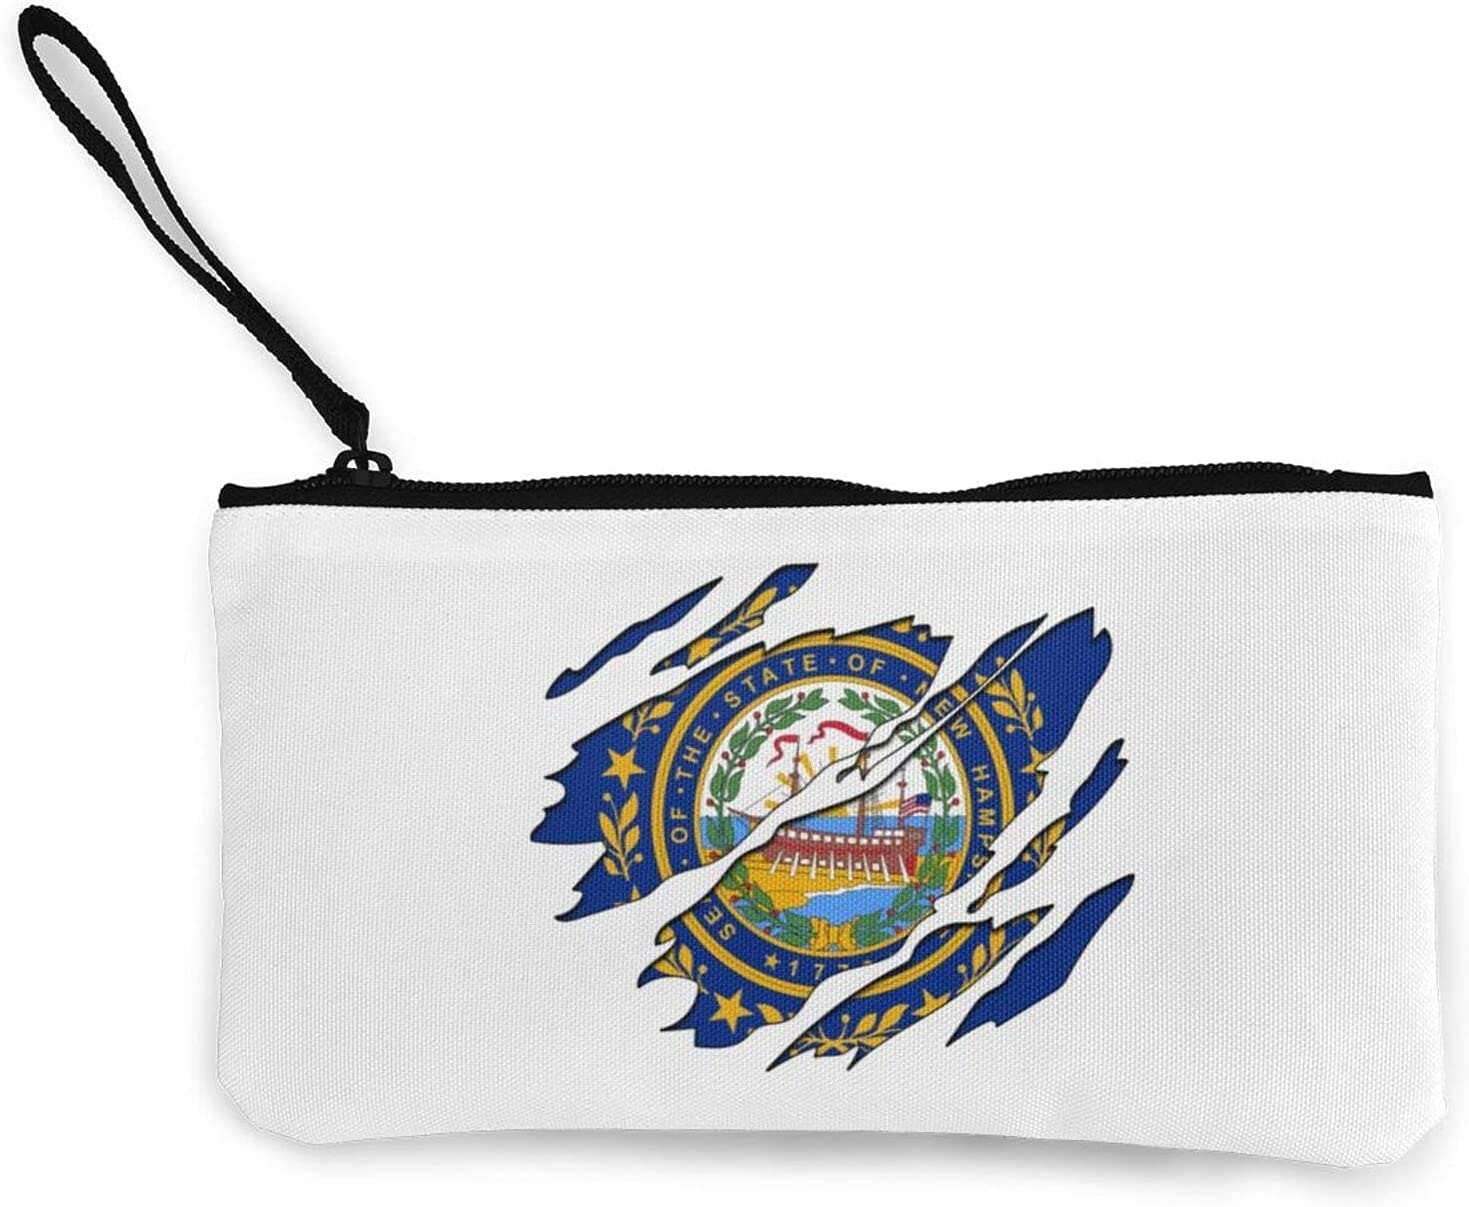 New Hampshire Flag Multifunction Travel Toiletry Pouch Small Canvas Coin Wallet Bag Zipper